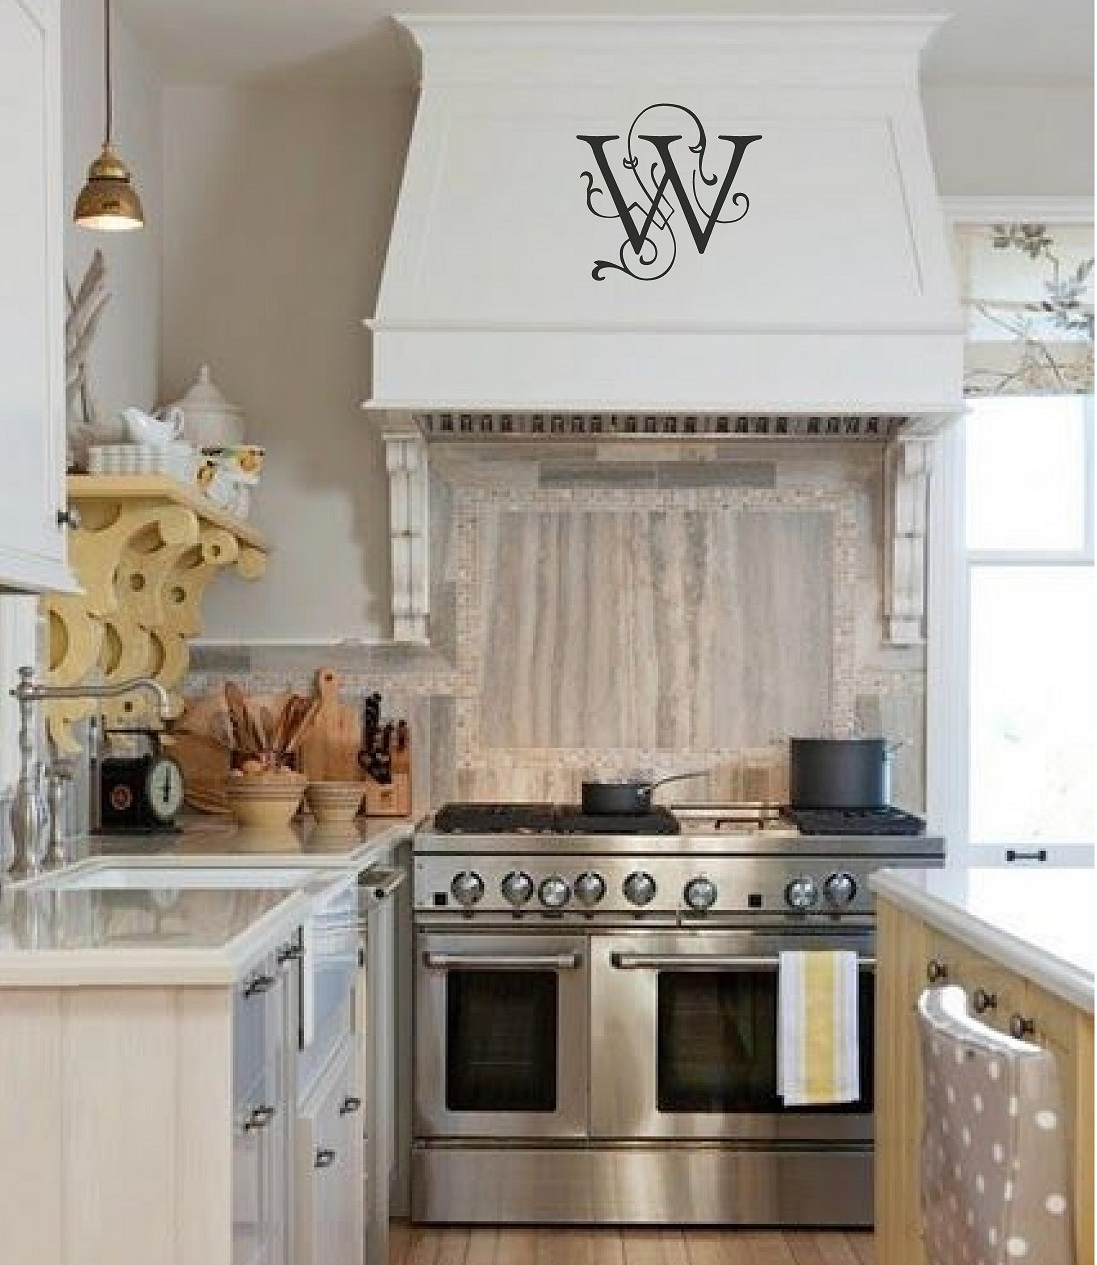 Kitchen Wall Quotes Vinyl Wall Sayings For Kitchens Dining